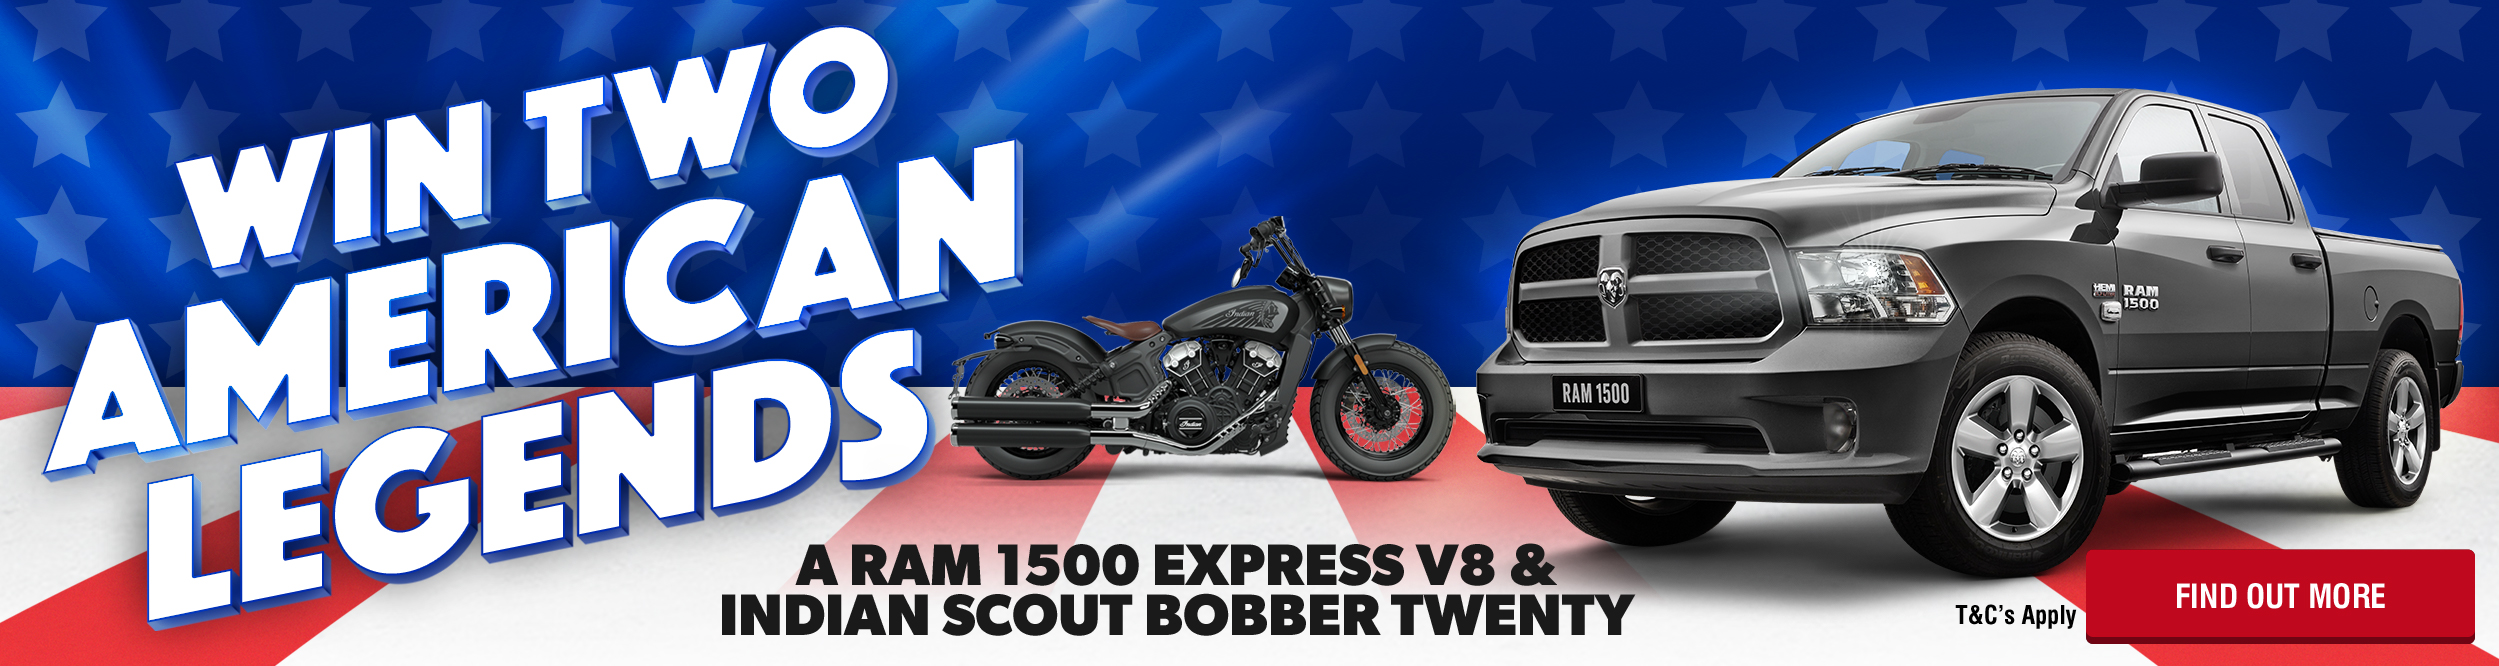 Shannons RAM 1500 Express V8 and Indian Scout Bobber Twenty Competition.